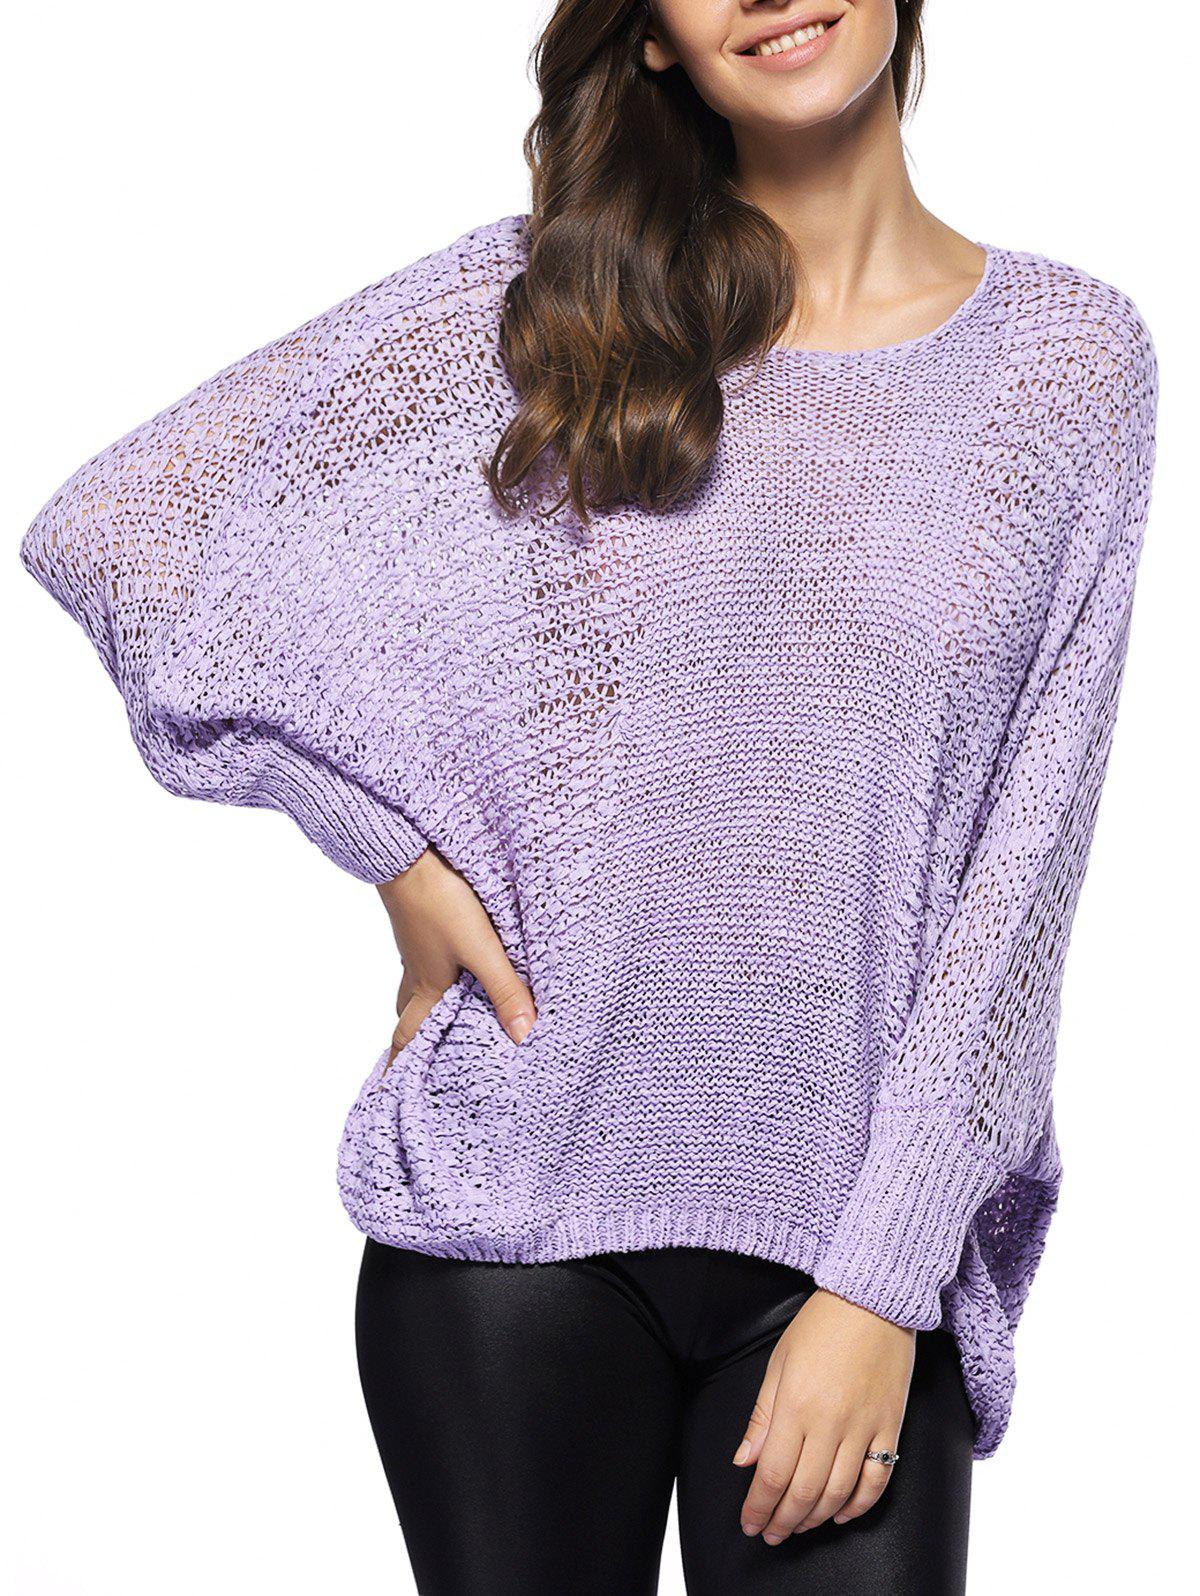 Asymmetric Batwing Sleeve Openwork Sweater